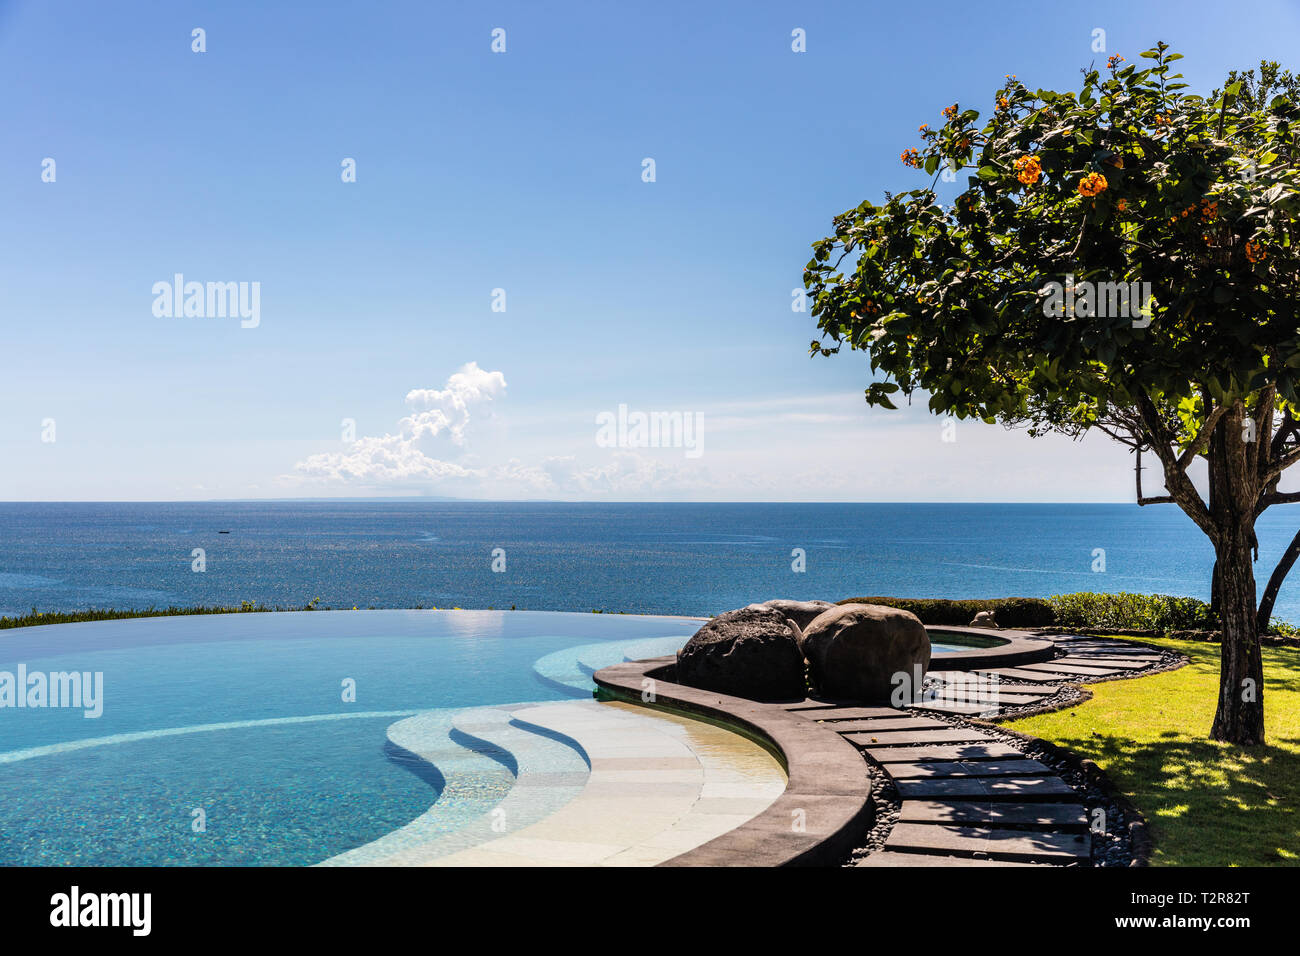 Infinity pool on the cliff edge with the view of the ocean. - Stock Image